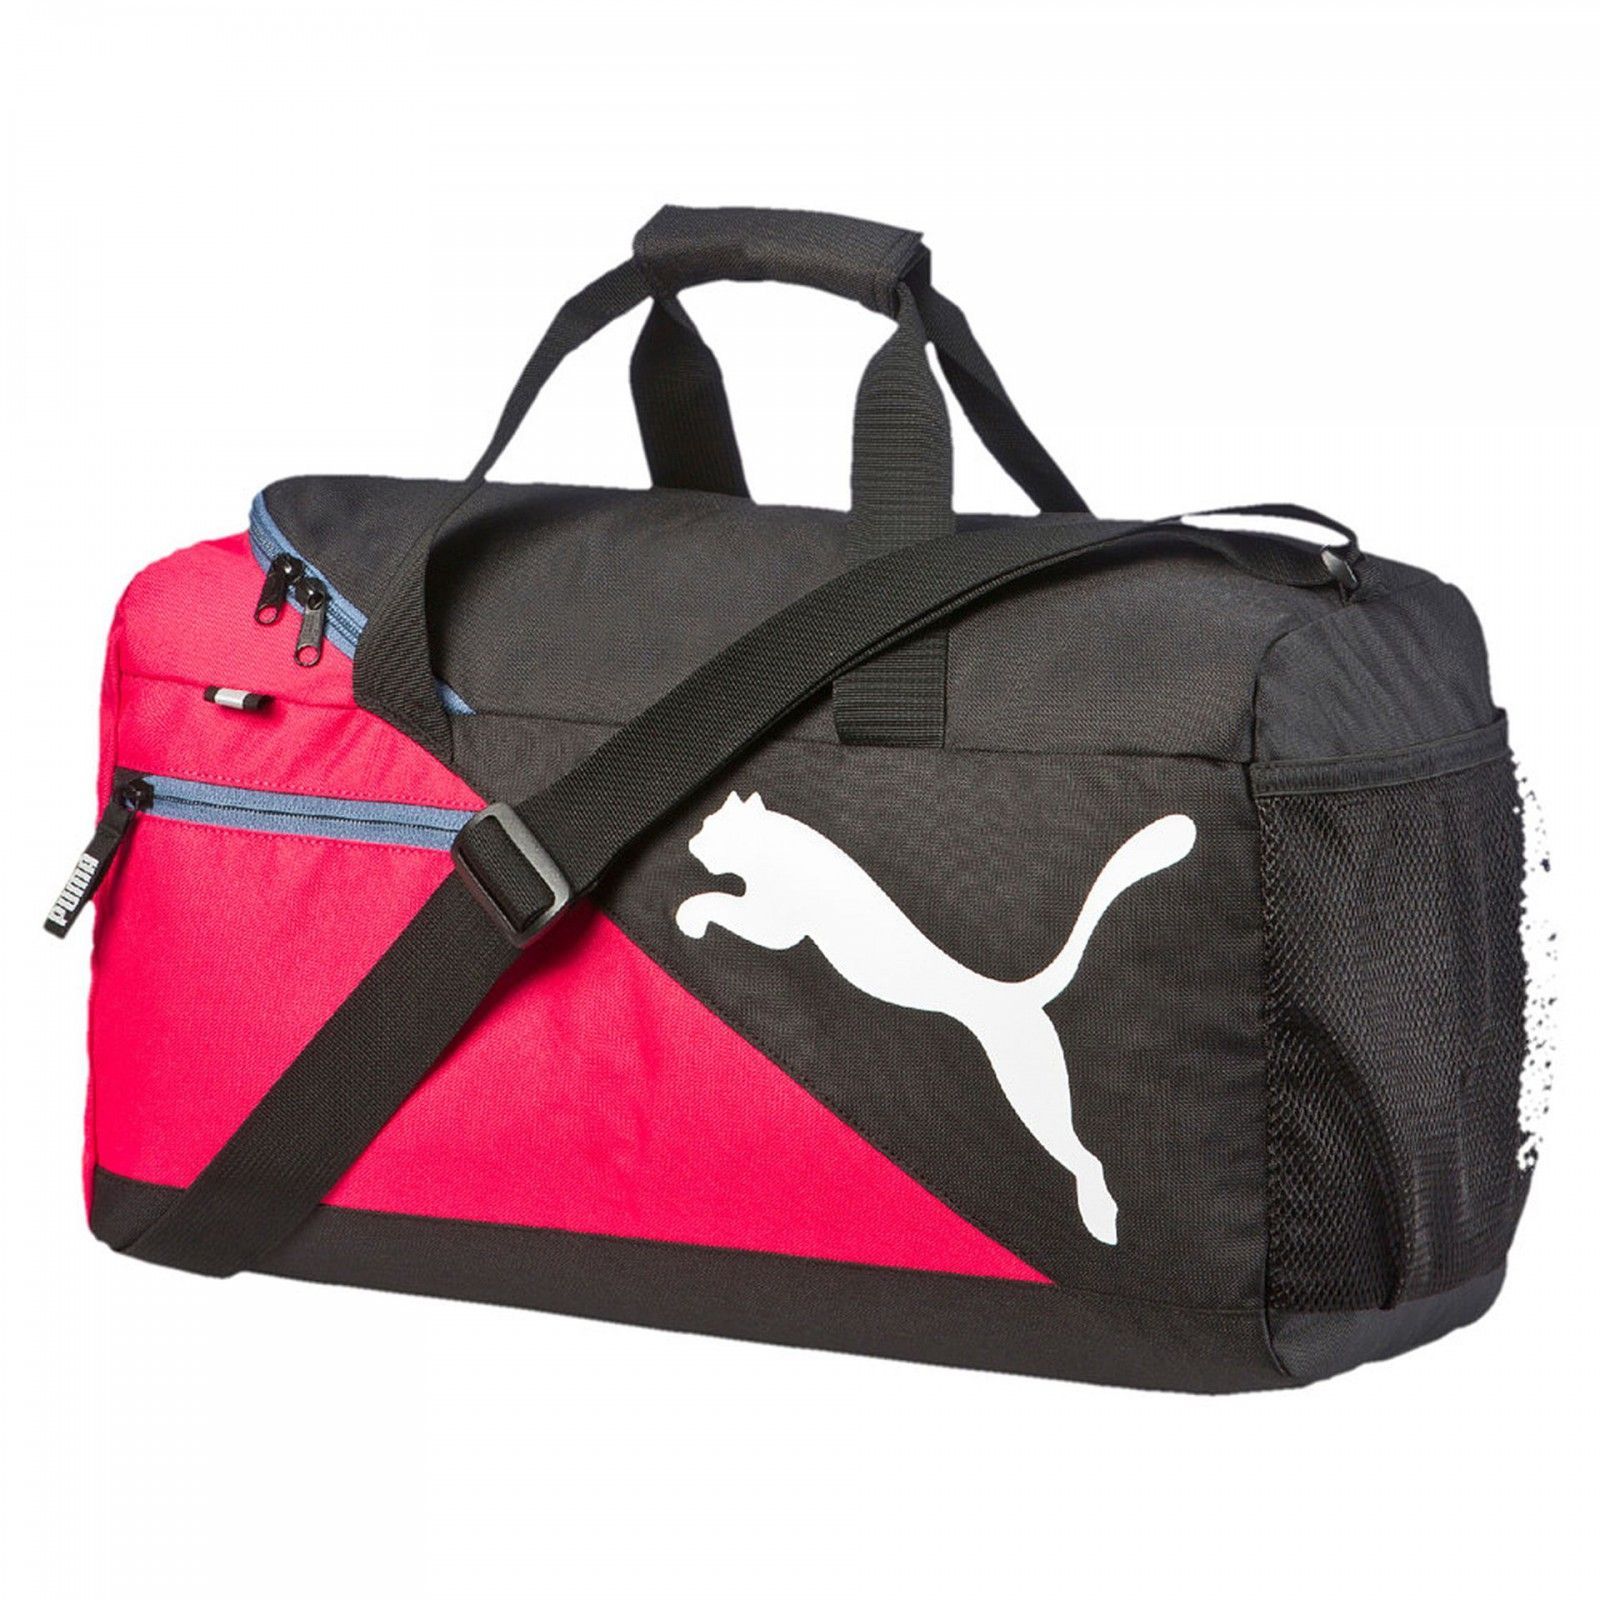 modeherz ♥ PUMA Fundamentals Sports Bag S Rose Red ♥ 073499 06 #modeherz  #Sporttasche